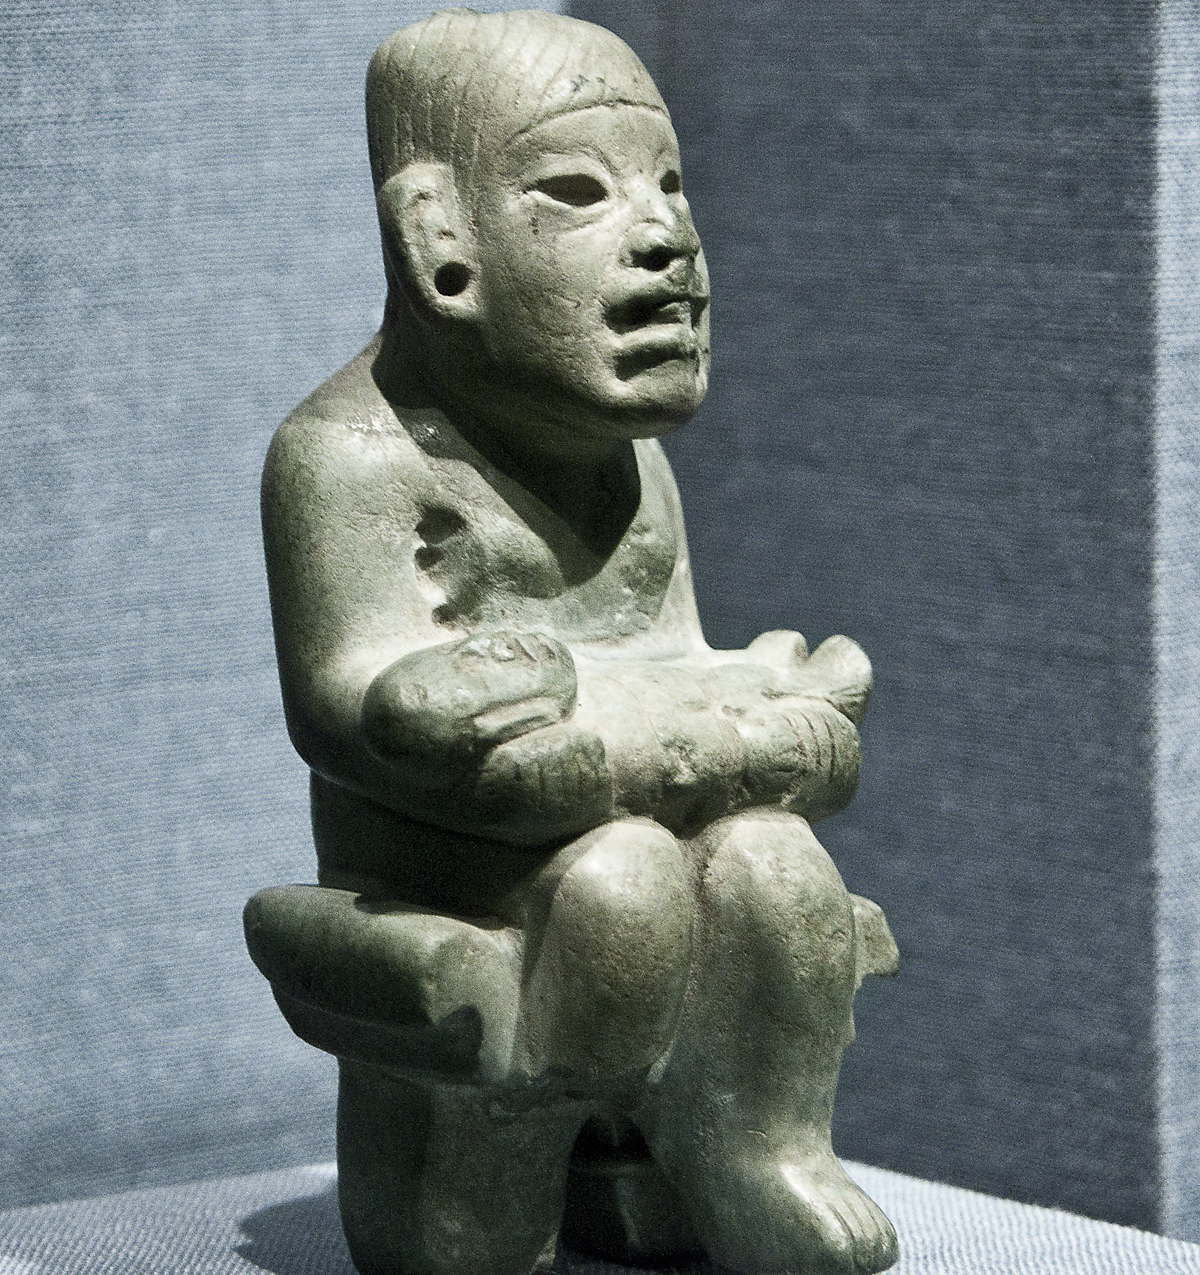 Seated figure holding infant